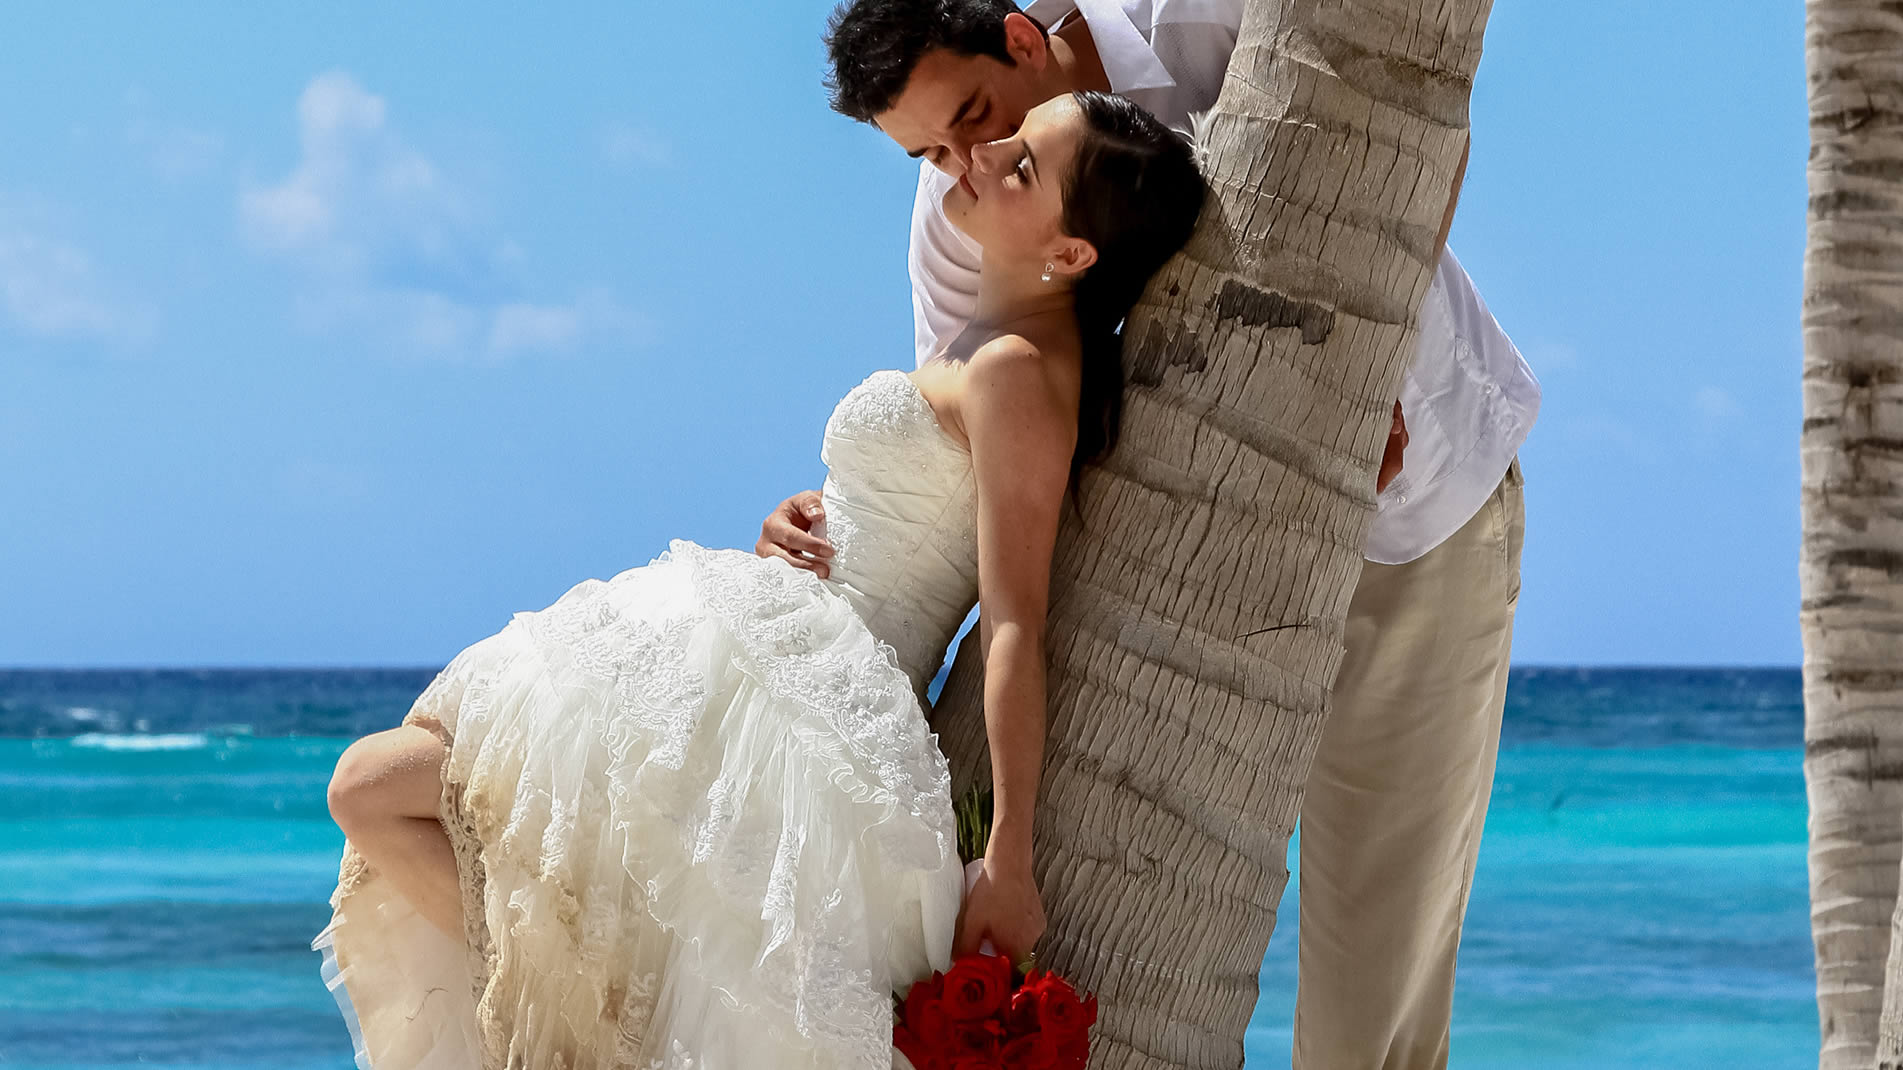 Barceló in Los Cabos offers up to $2000 in added values including a free stay for bride and groom for 2 nights.